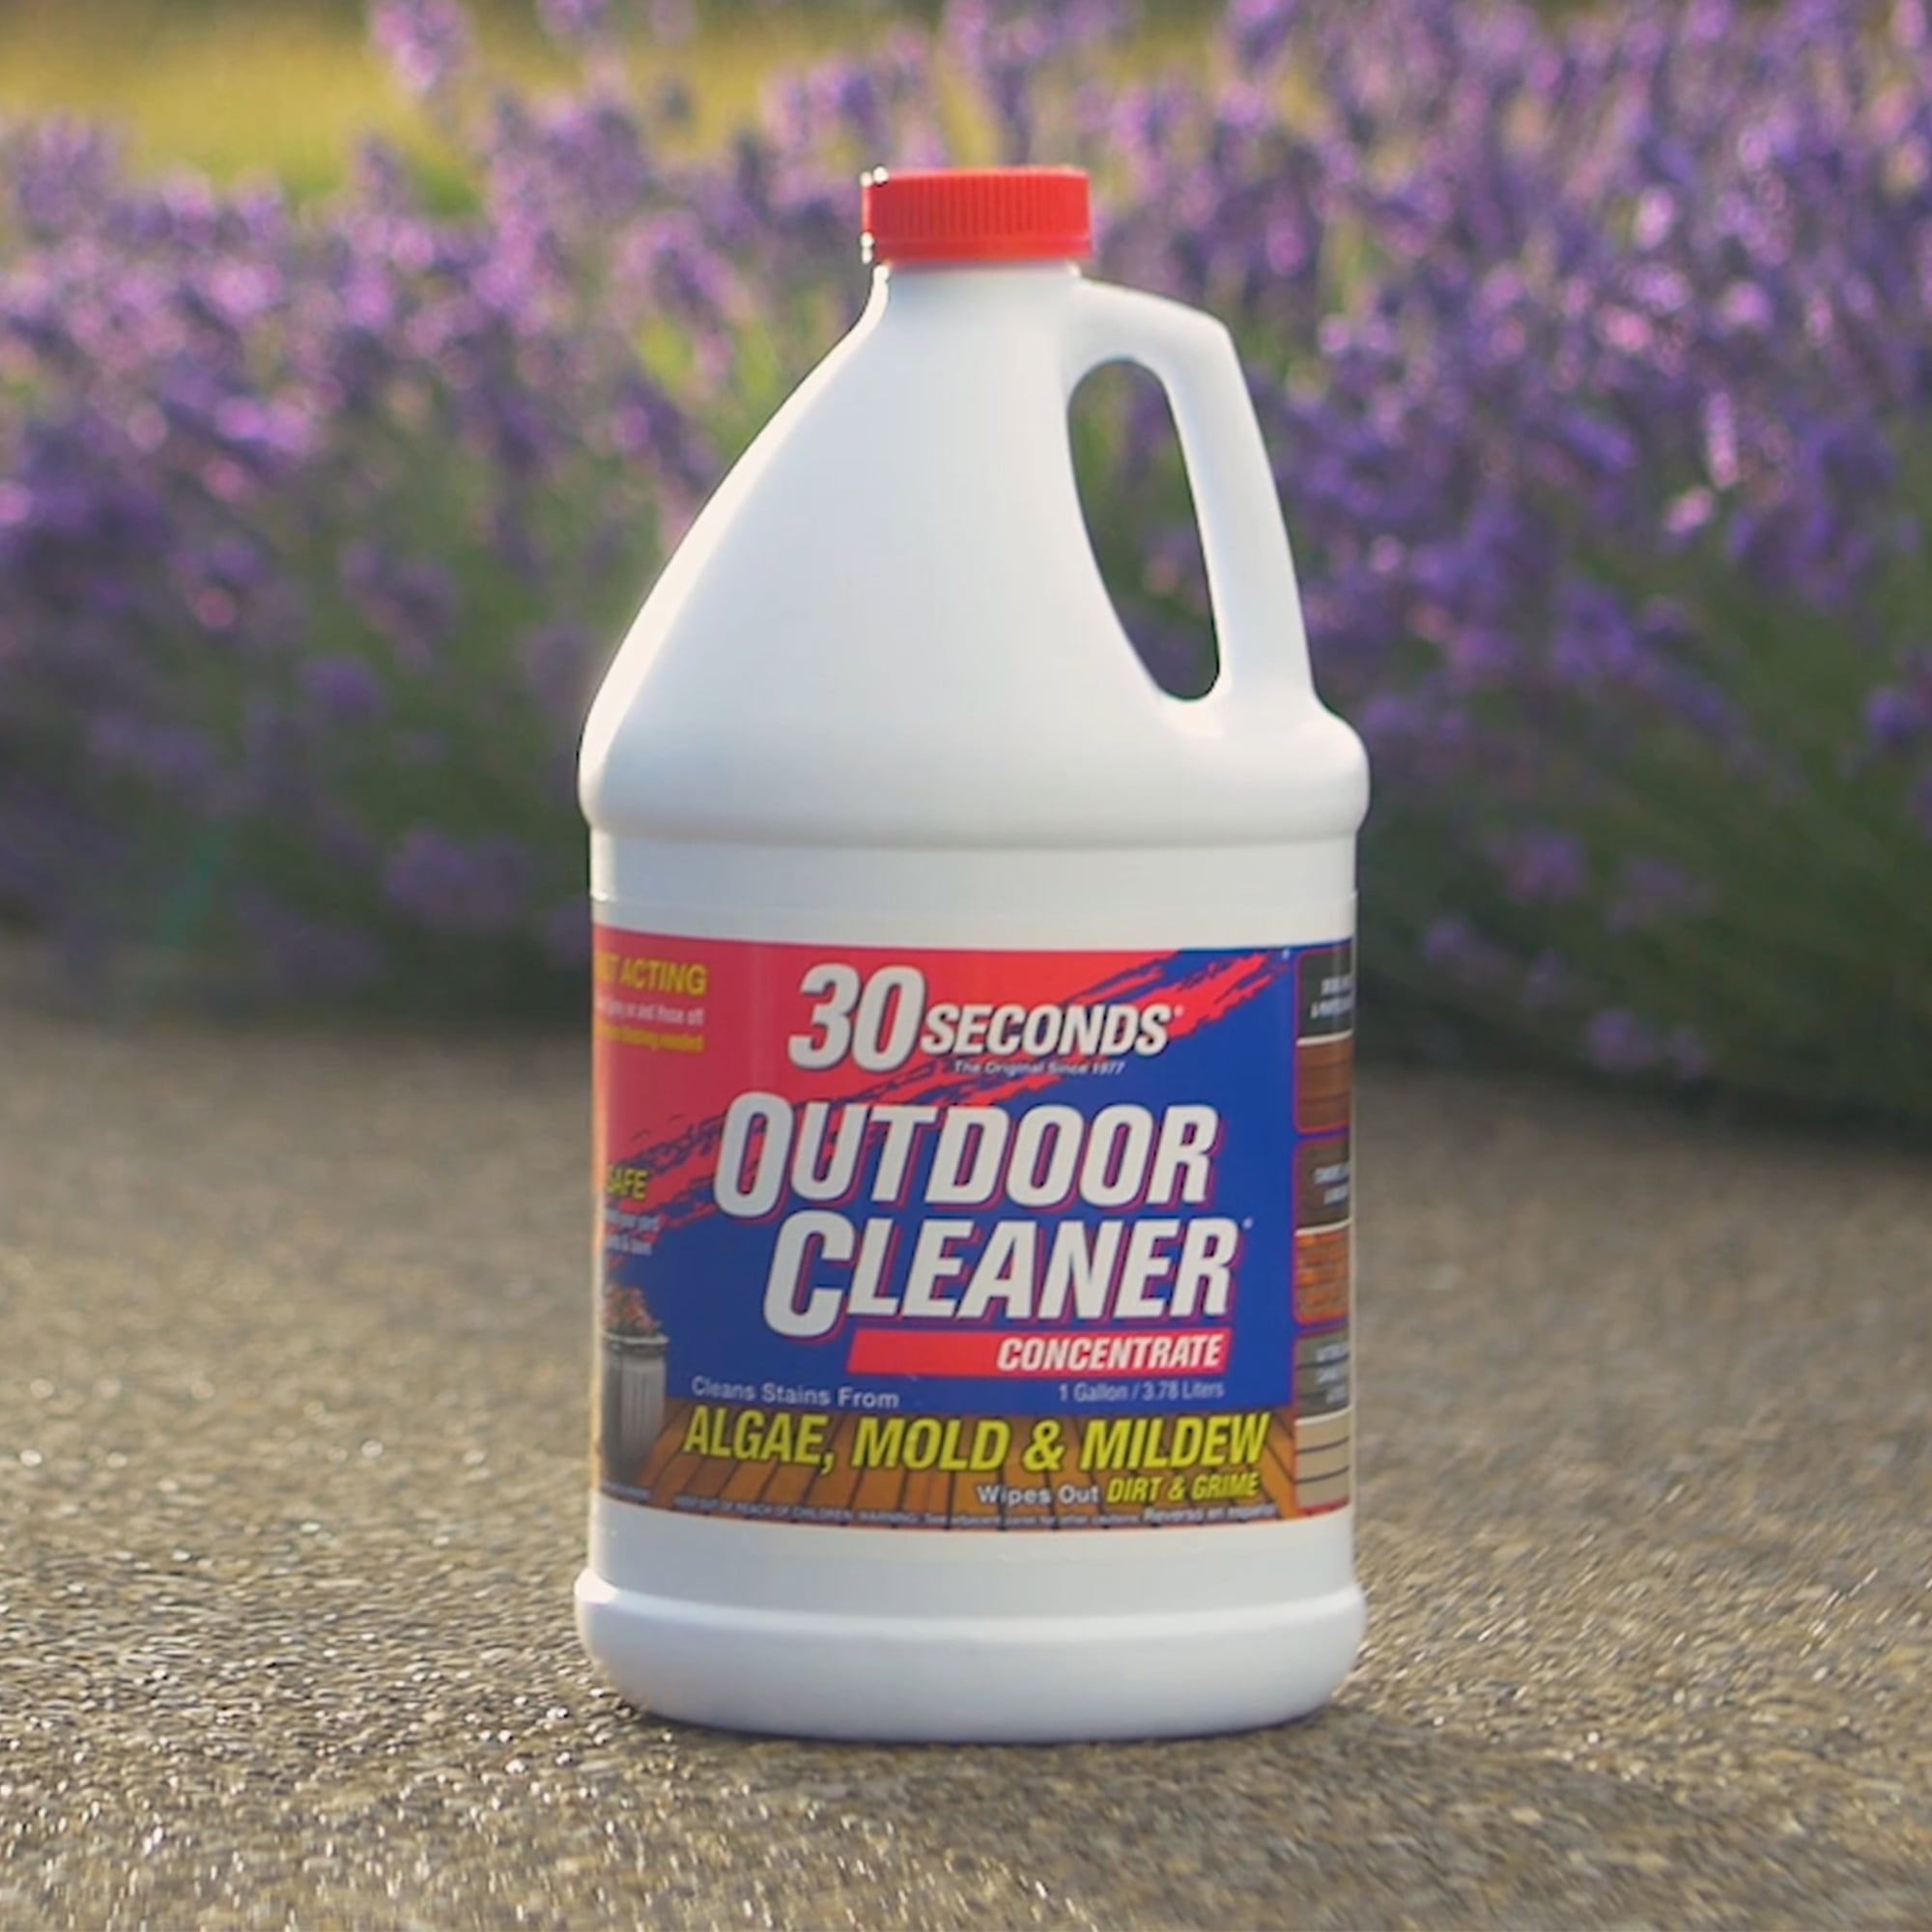 30 Seconds Outdoor Cleaner For Stains